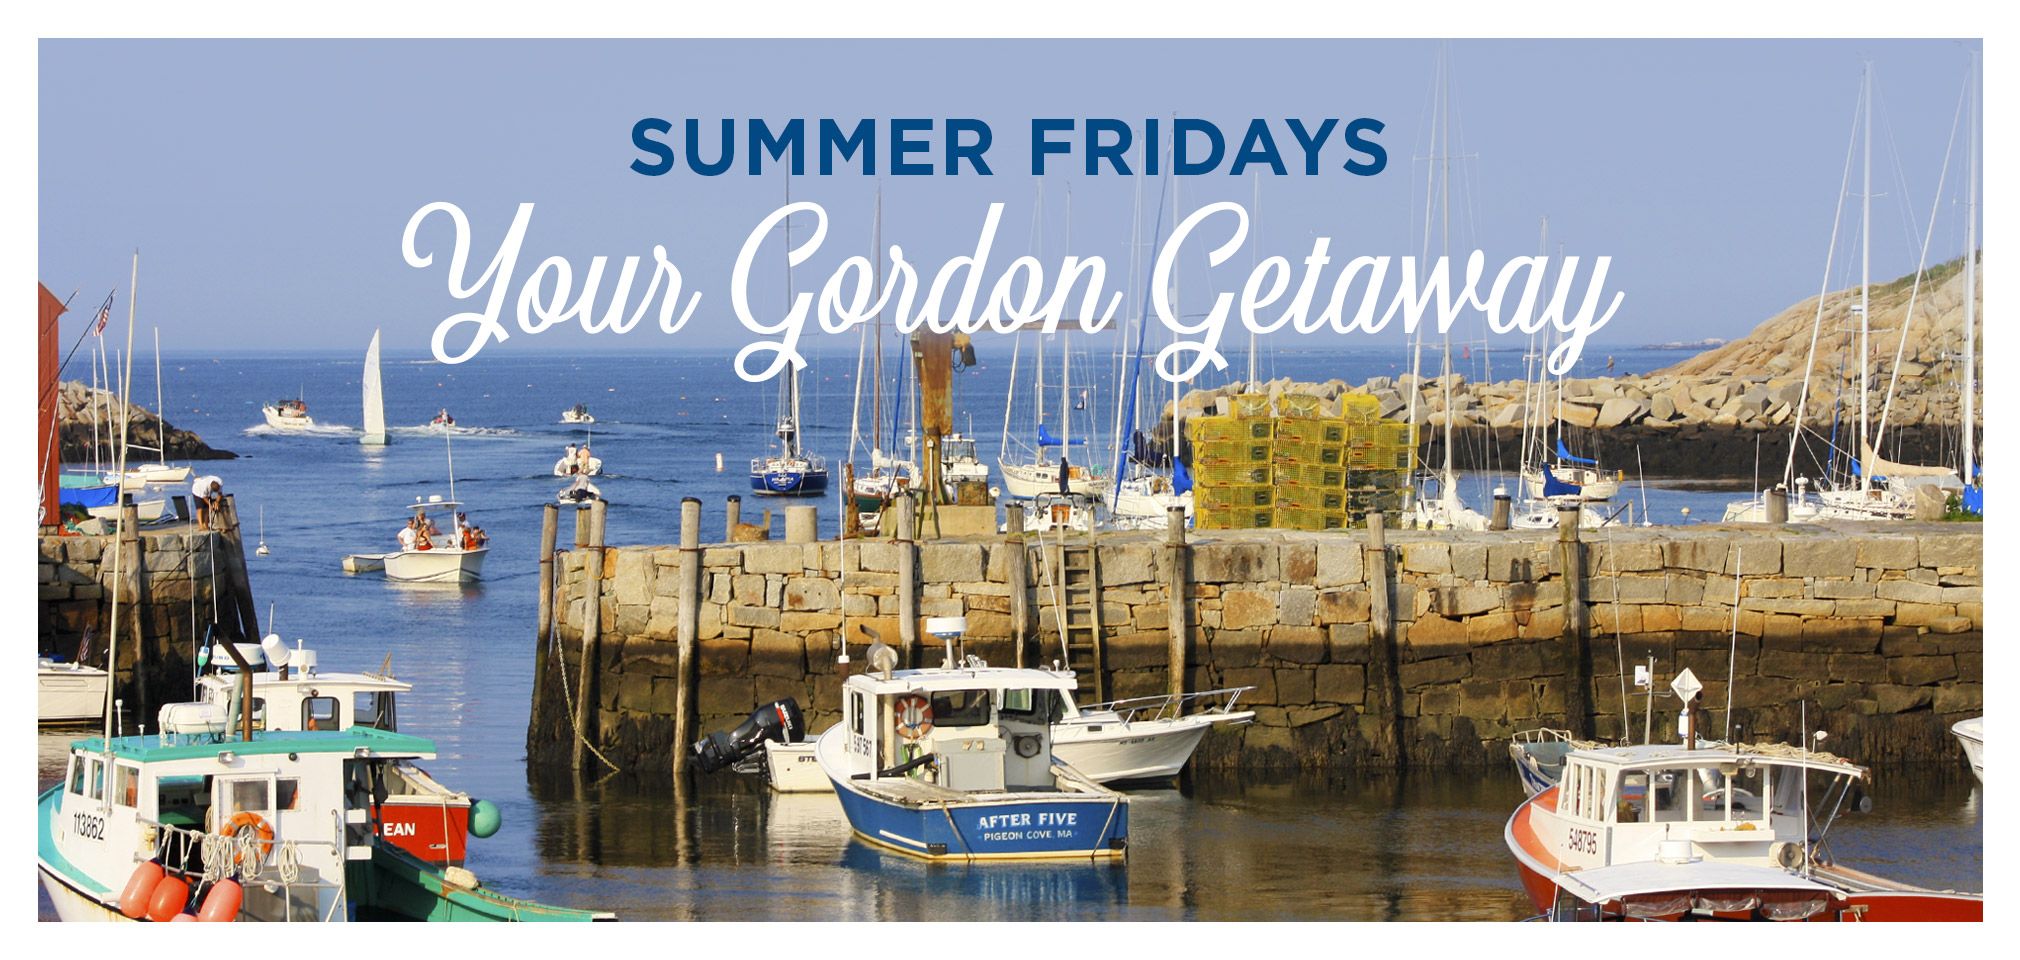 Summer Fridays title and picture of Rockport harbor